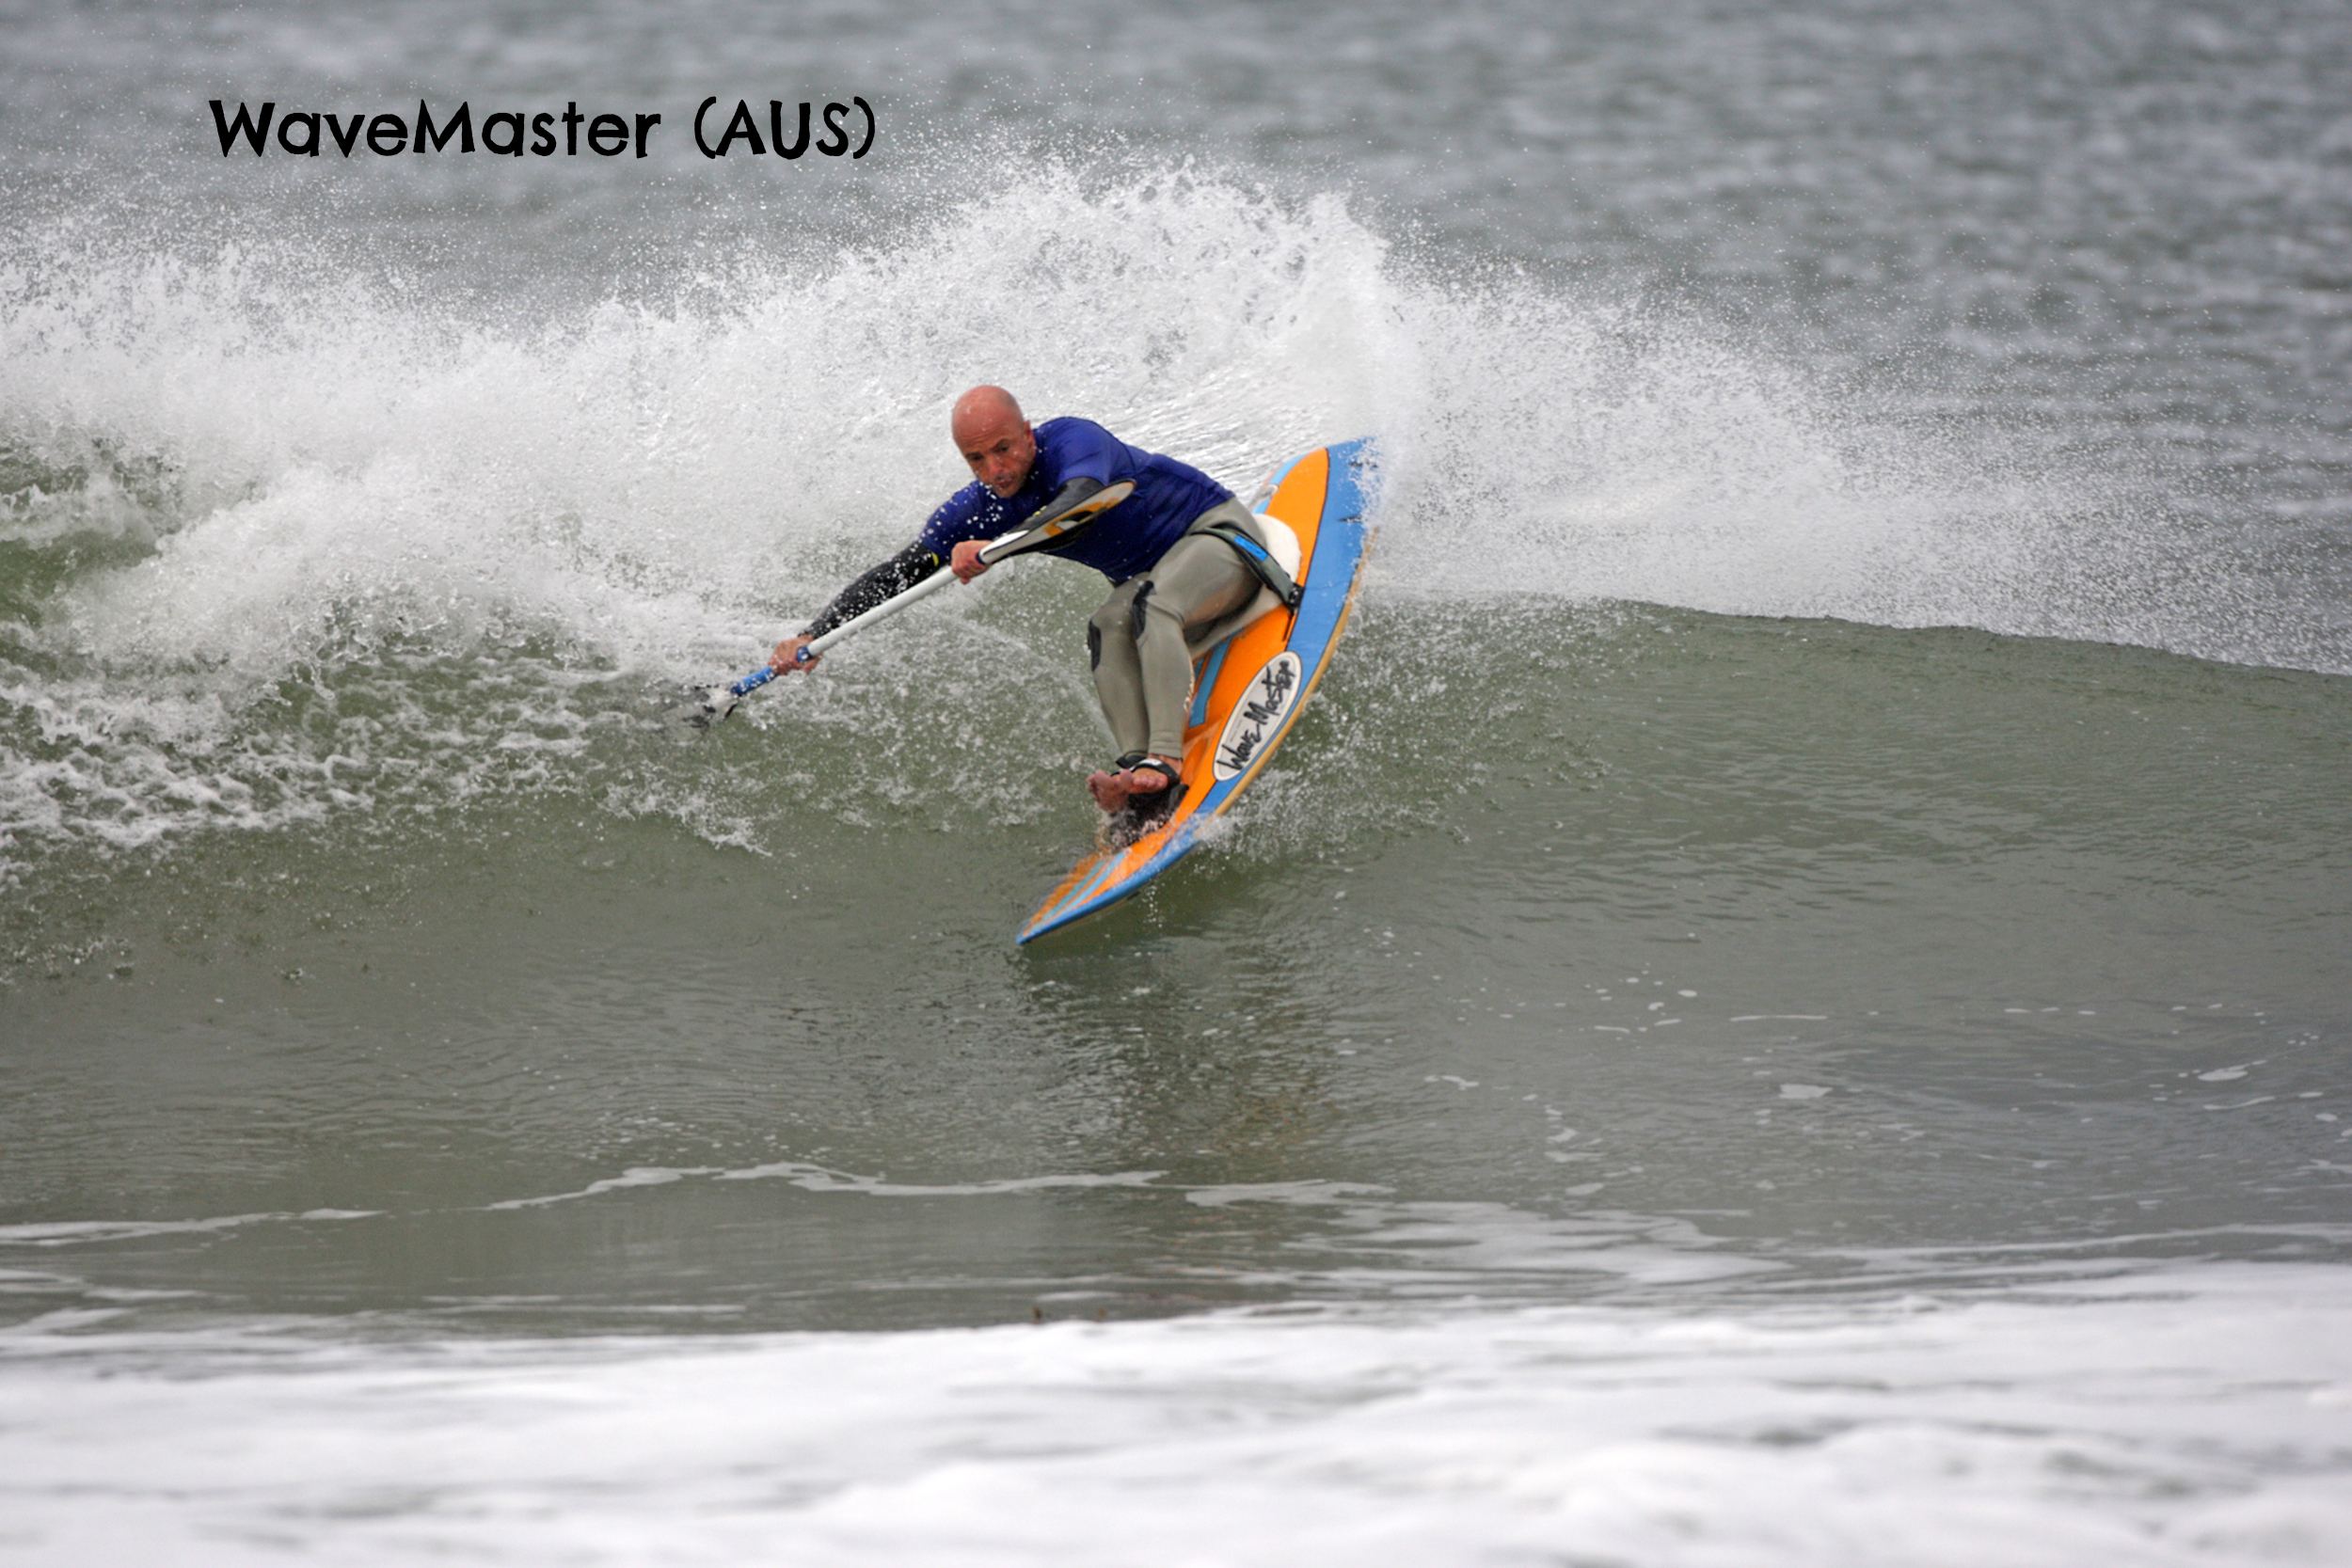 WAVEMASTER (AUSTRALIA) - Showing Steve Moser, US Agent, CA, USA - click on the picture to go to WaveMaster website - Photo Copyright Dominick Lemarie Photography